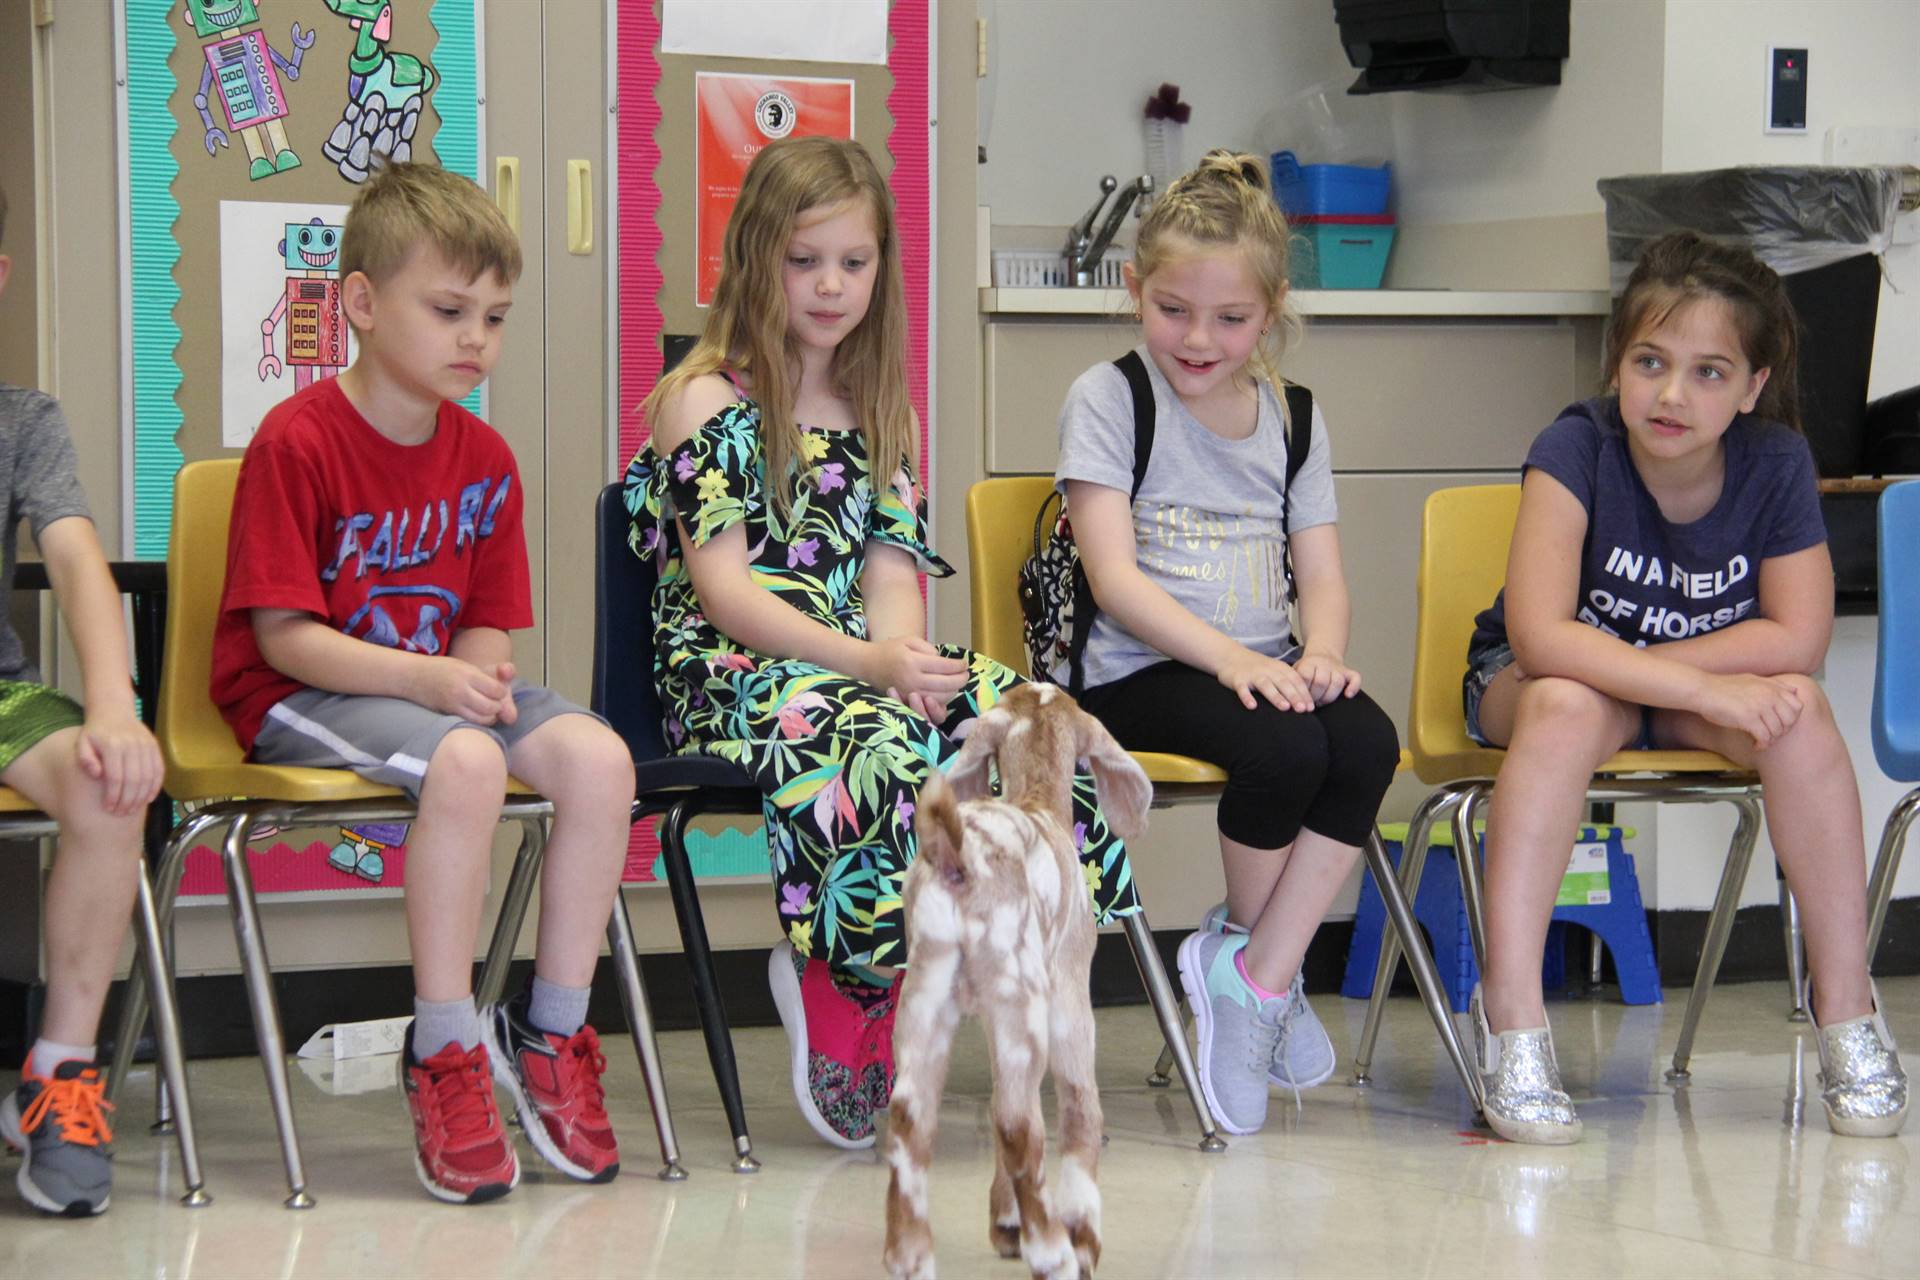 goat visiting students sitting 3